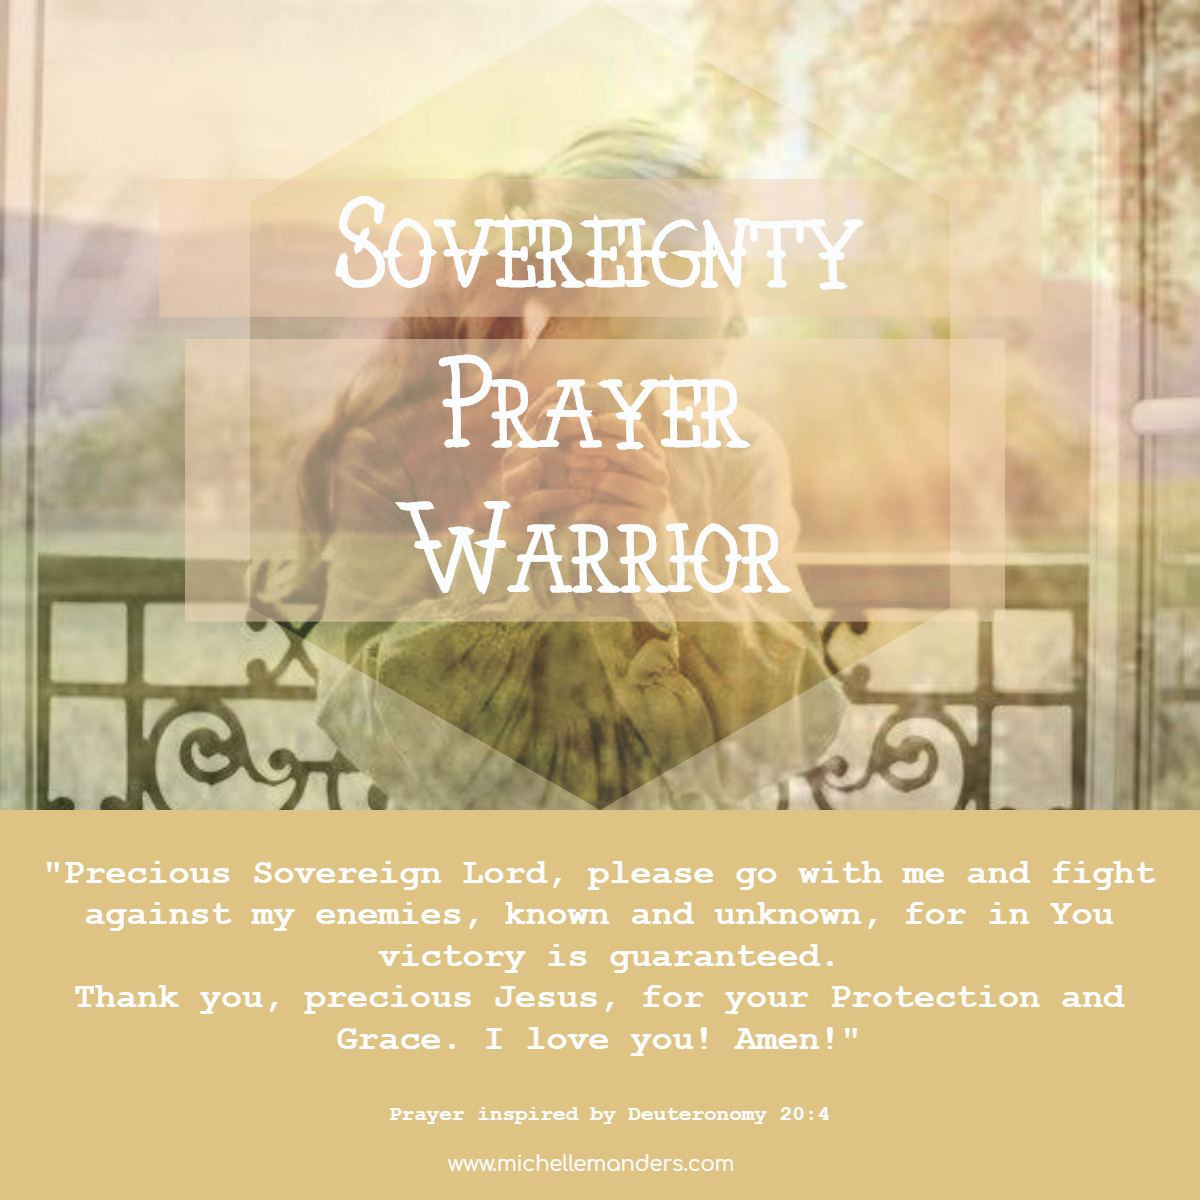 Prayer for Assistance in Dealing with Enemies